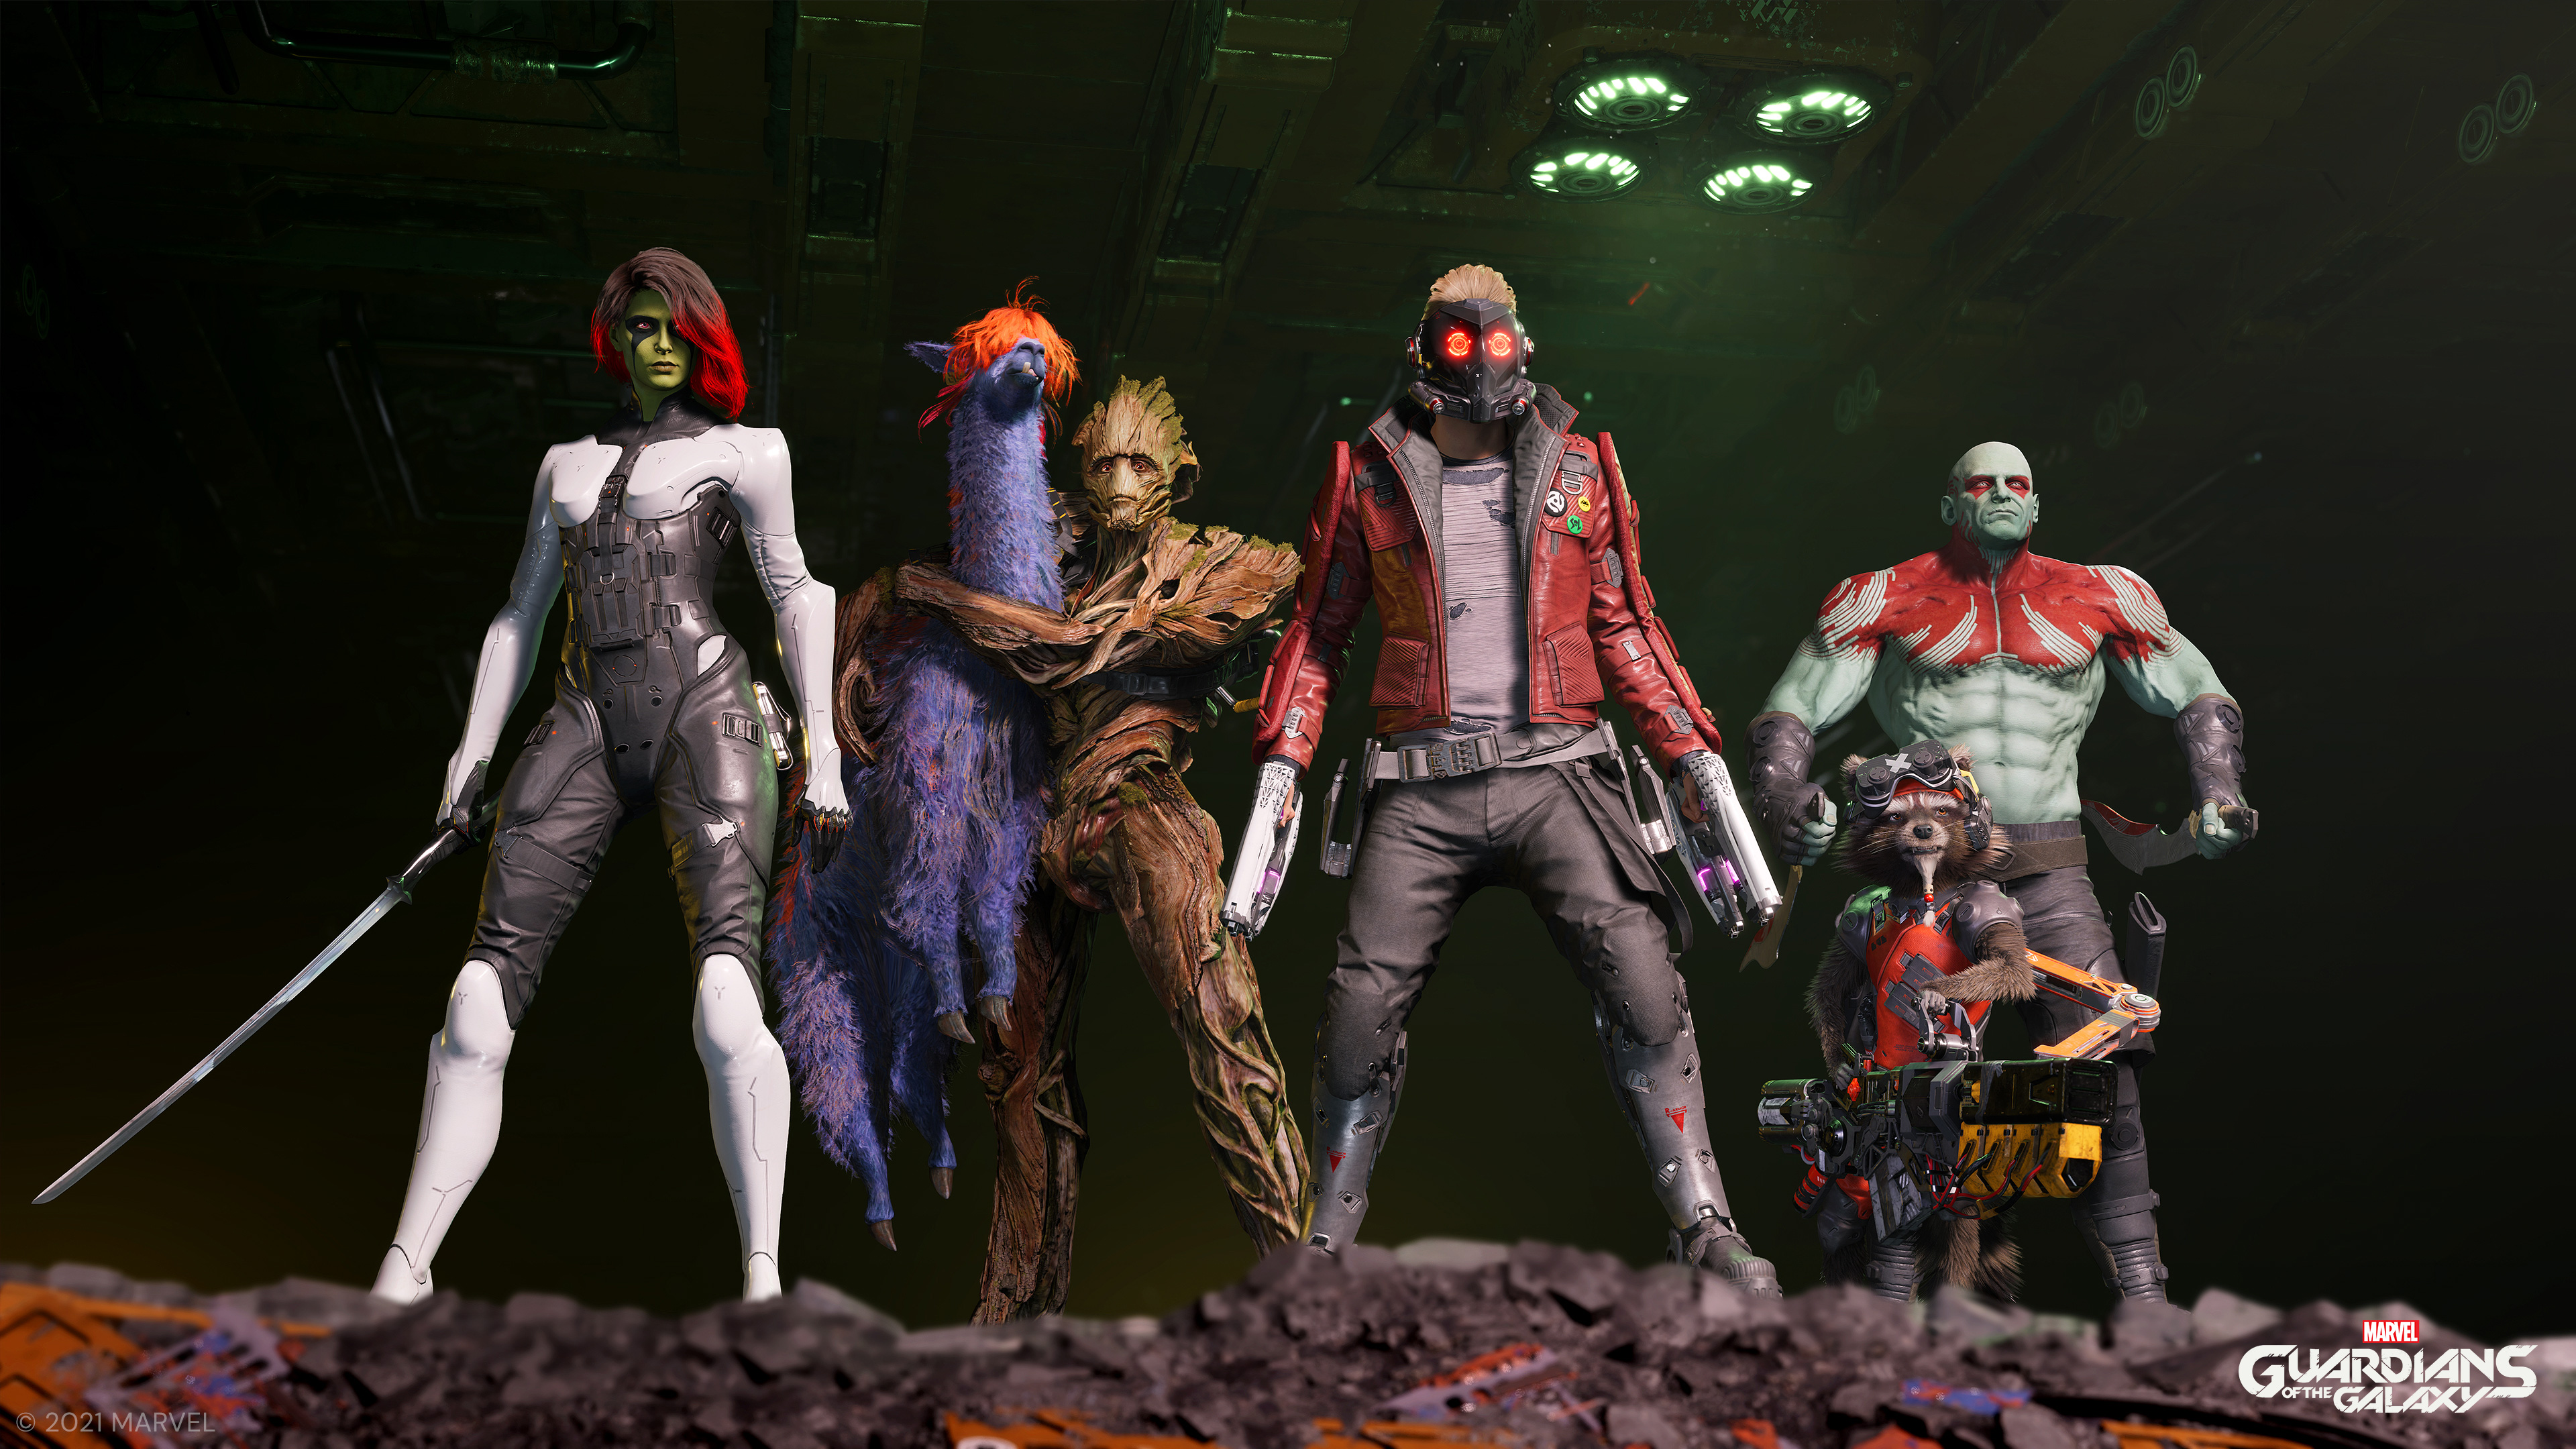 Marvels Guardians of the Galaxy 2021 06 13 21 002